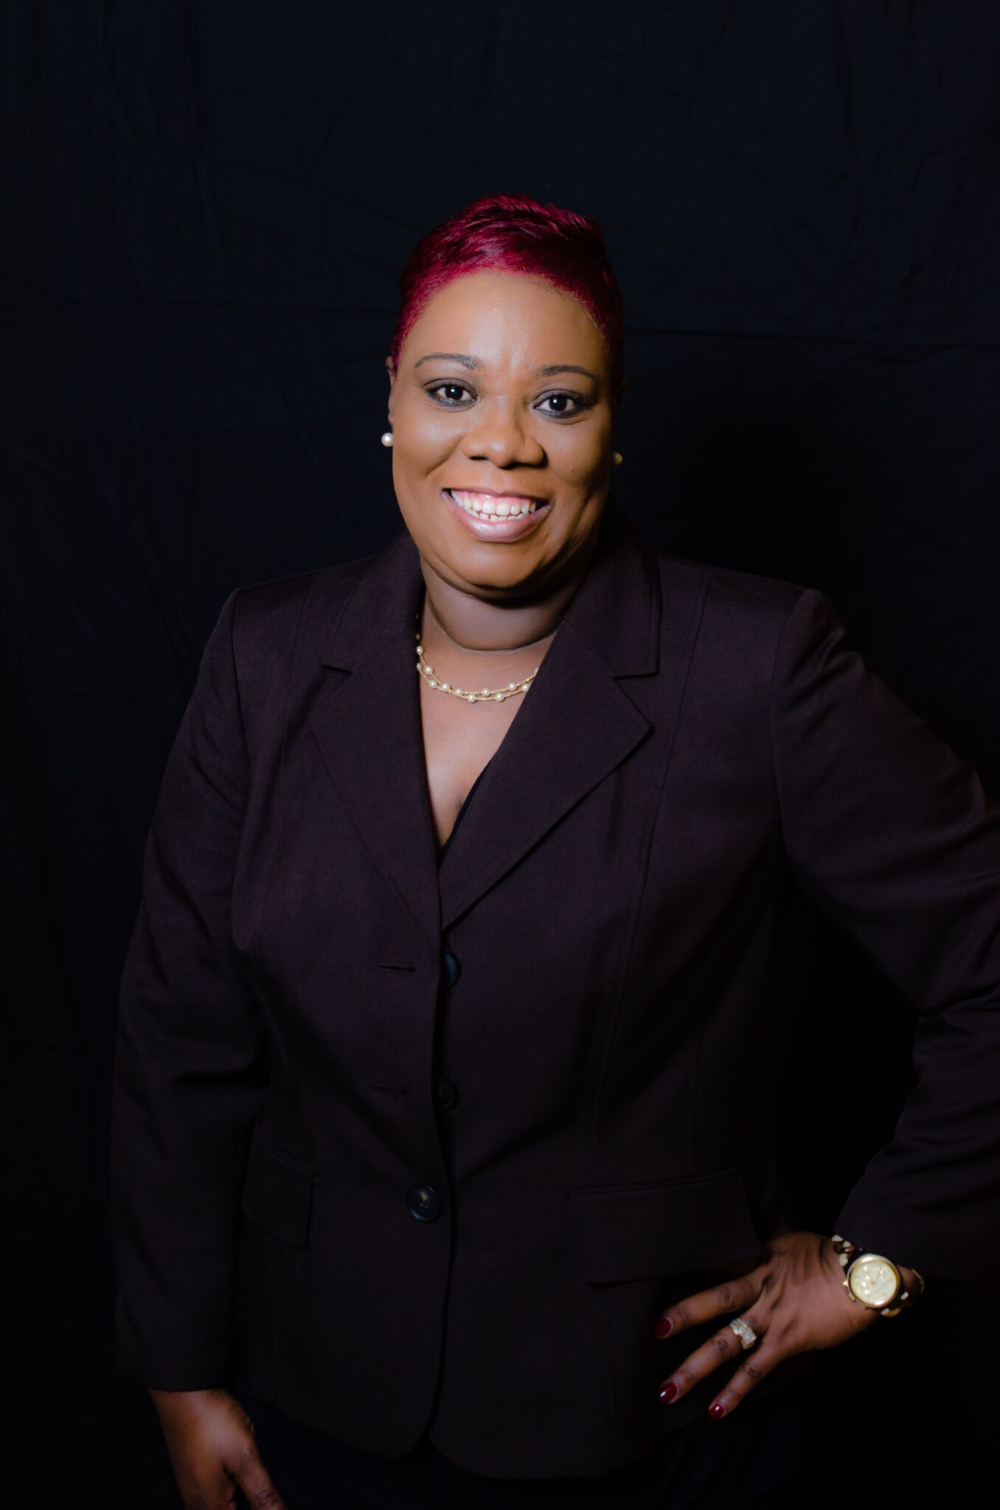 "Dr. Sharetta Remikie will be a guest speaker at the dope wives fall retreat 2016 REGISTER HERE! Dr. Sharetta Jones Remikie is native of Broward County in South Florida. She received a Bachelor of Science degree from the University of Florida in Health Science Education, a Masters of Business Administration (MBA) from the University of Phoenix and her Doctorate Degree in Education (Ed.D.) at Nova Southeastern University with concentration in the areas of Human Services Administration and Organizational Leadership. She is also a graduate of the Ministerial Internship Program through the Church of God in Cleveland, Tennessee. She currently serves as the First Lady and President of Women's Discipleship at the Sixth Avenue Church of God, in North Miami, Florida, where her husband Bishop Raton Remikie, Sr. is the Senior Pastor. On December 4, 1993, her wedding day, the life of Dr. Remikie experienced a changed that would catapult her into a journey that only books and movies could foretell. Her marital journey would become a testimony which ministers hope to many. Dr. Remikie's testimony as a wife has been the basis for several conference workshops, small group discussions, and ""Celebration of Black Marriages"" events hosted by Dr. Remikie and her husband. In June 2016, Dr. Remikie birthed her ""Naomi-Ruth project"". Through creative and innovative interventions, the Naomi-Ruth project prepares and supports young women in the art of developing and sustaining healthy relationships, beginning with themselves. Dr. Remikie has worked in the nonprofit arena for almost 30 years in the capacity of case manager, project coordinator, program director, and community activist. She has used her positions to tackle the issue of racial disparity in maternal child health issues. She has held the position of Co-Chairperson of the Black Infant Health Practice Initiative; Member of the Broward Human Trafficking Coalition; Member of the Breastfeeding Coalition of Broward; Mentor and Volunteer for Seagull Alternative School (Teen Parent program); Member of the Florida Health Equity Commission's Steering committee; Past Member of GIRLfessional, Inc.; Member of Florida Public Health Association; 2016 Inductee into the Broward County Women's Hall of Fame; and 2016-2017 CityMatCH's CityLeaders. Dr. Remikie's other areas of expertise include; mentoring, couples ministry, youth empowerment, maternal and infant health, women empowerment and male responsibility. Her sole purpose encompasses Empowering, Enhancing and Equipping others. She accomplishes this by adding positive value to individuals, organizations and communities in order for them to maximize their Effectiveness. Dr. Remikie aspires to be a national and international trainer and motivational speaker on racial justice, women issues, human rights and social justice. She is a passionate and informed voice of ""equity"" and desires to be an educator at the higher education level. Yet, of all her accomplishments the most cherish one is being the wife of Bishop Raton Remikie, Sr. and mother to Khambrel (Erica) and Khamisha and stepmom to Natalie (Alfred), Raton Jr., and Rakeem and the late Jonathan. Dr. Remikie also has two grandchildren, Jaylen and Dylan"